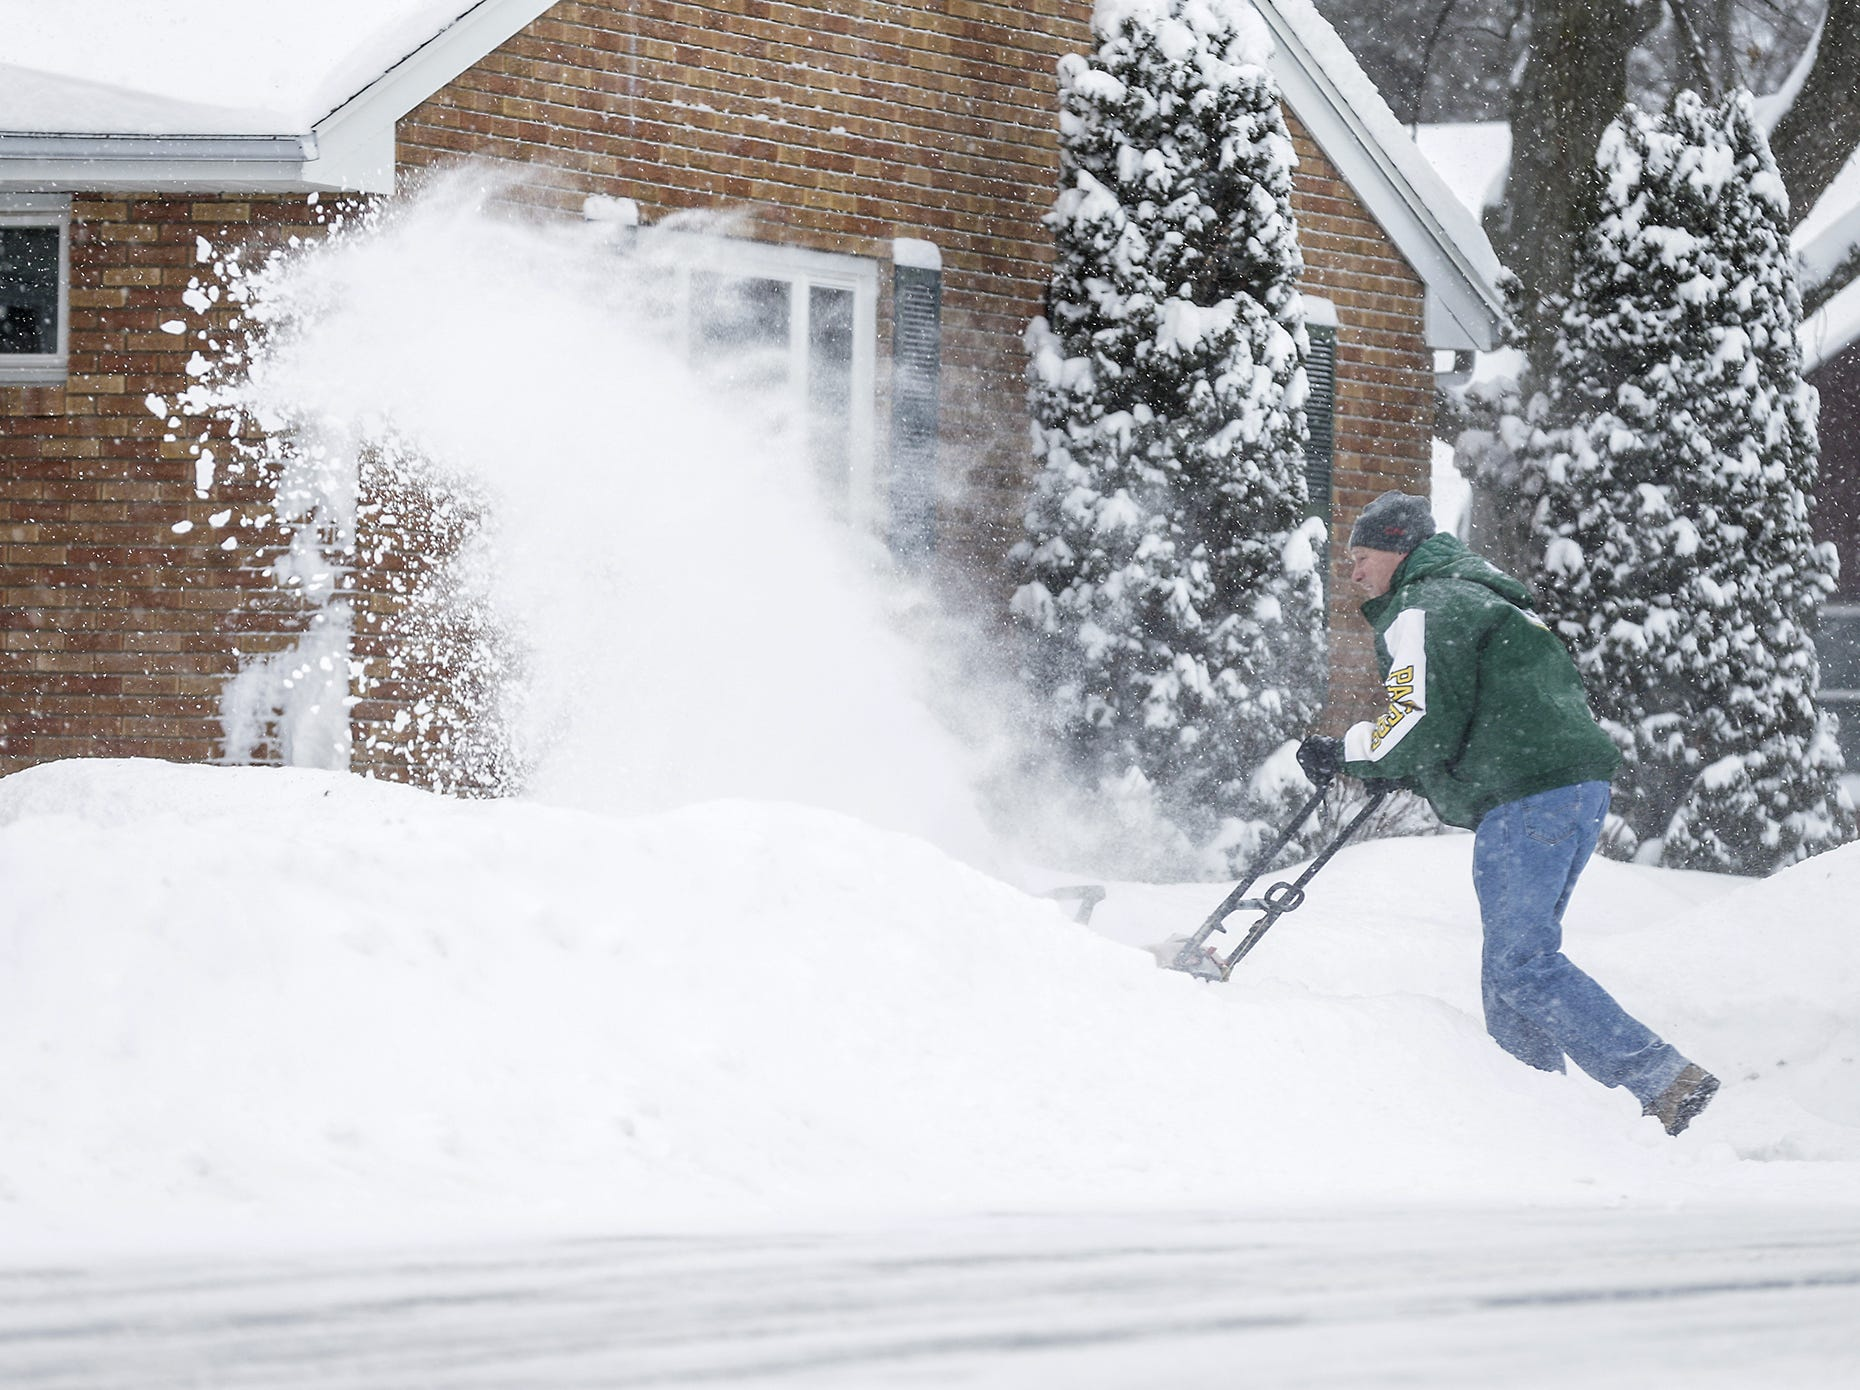 Jeff Fischer of Fond du Lac, snowblows his driveway Monday, Jan. 28, 2019, during a snow storm that hampered travel and closed businesses and schools in the Fond du Lac area. This was the Fond du Lac area's second snow storm in five days.